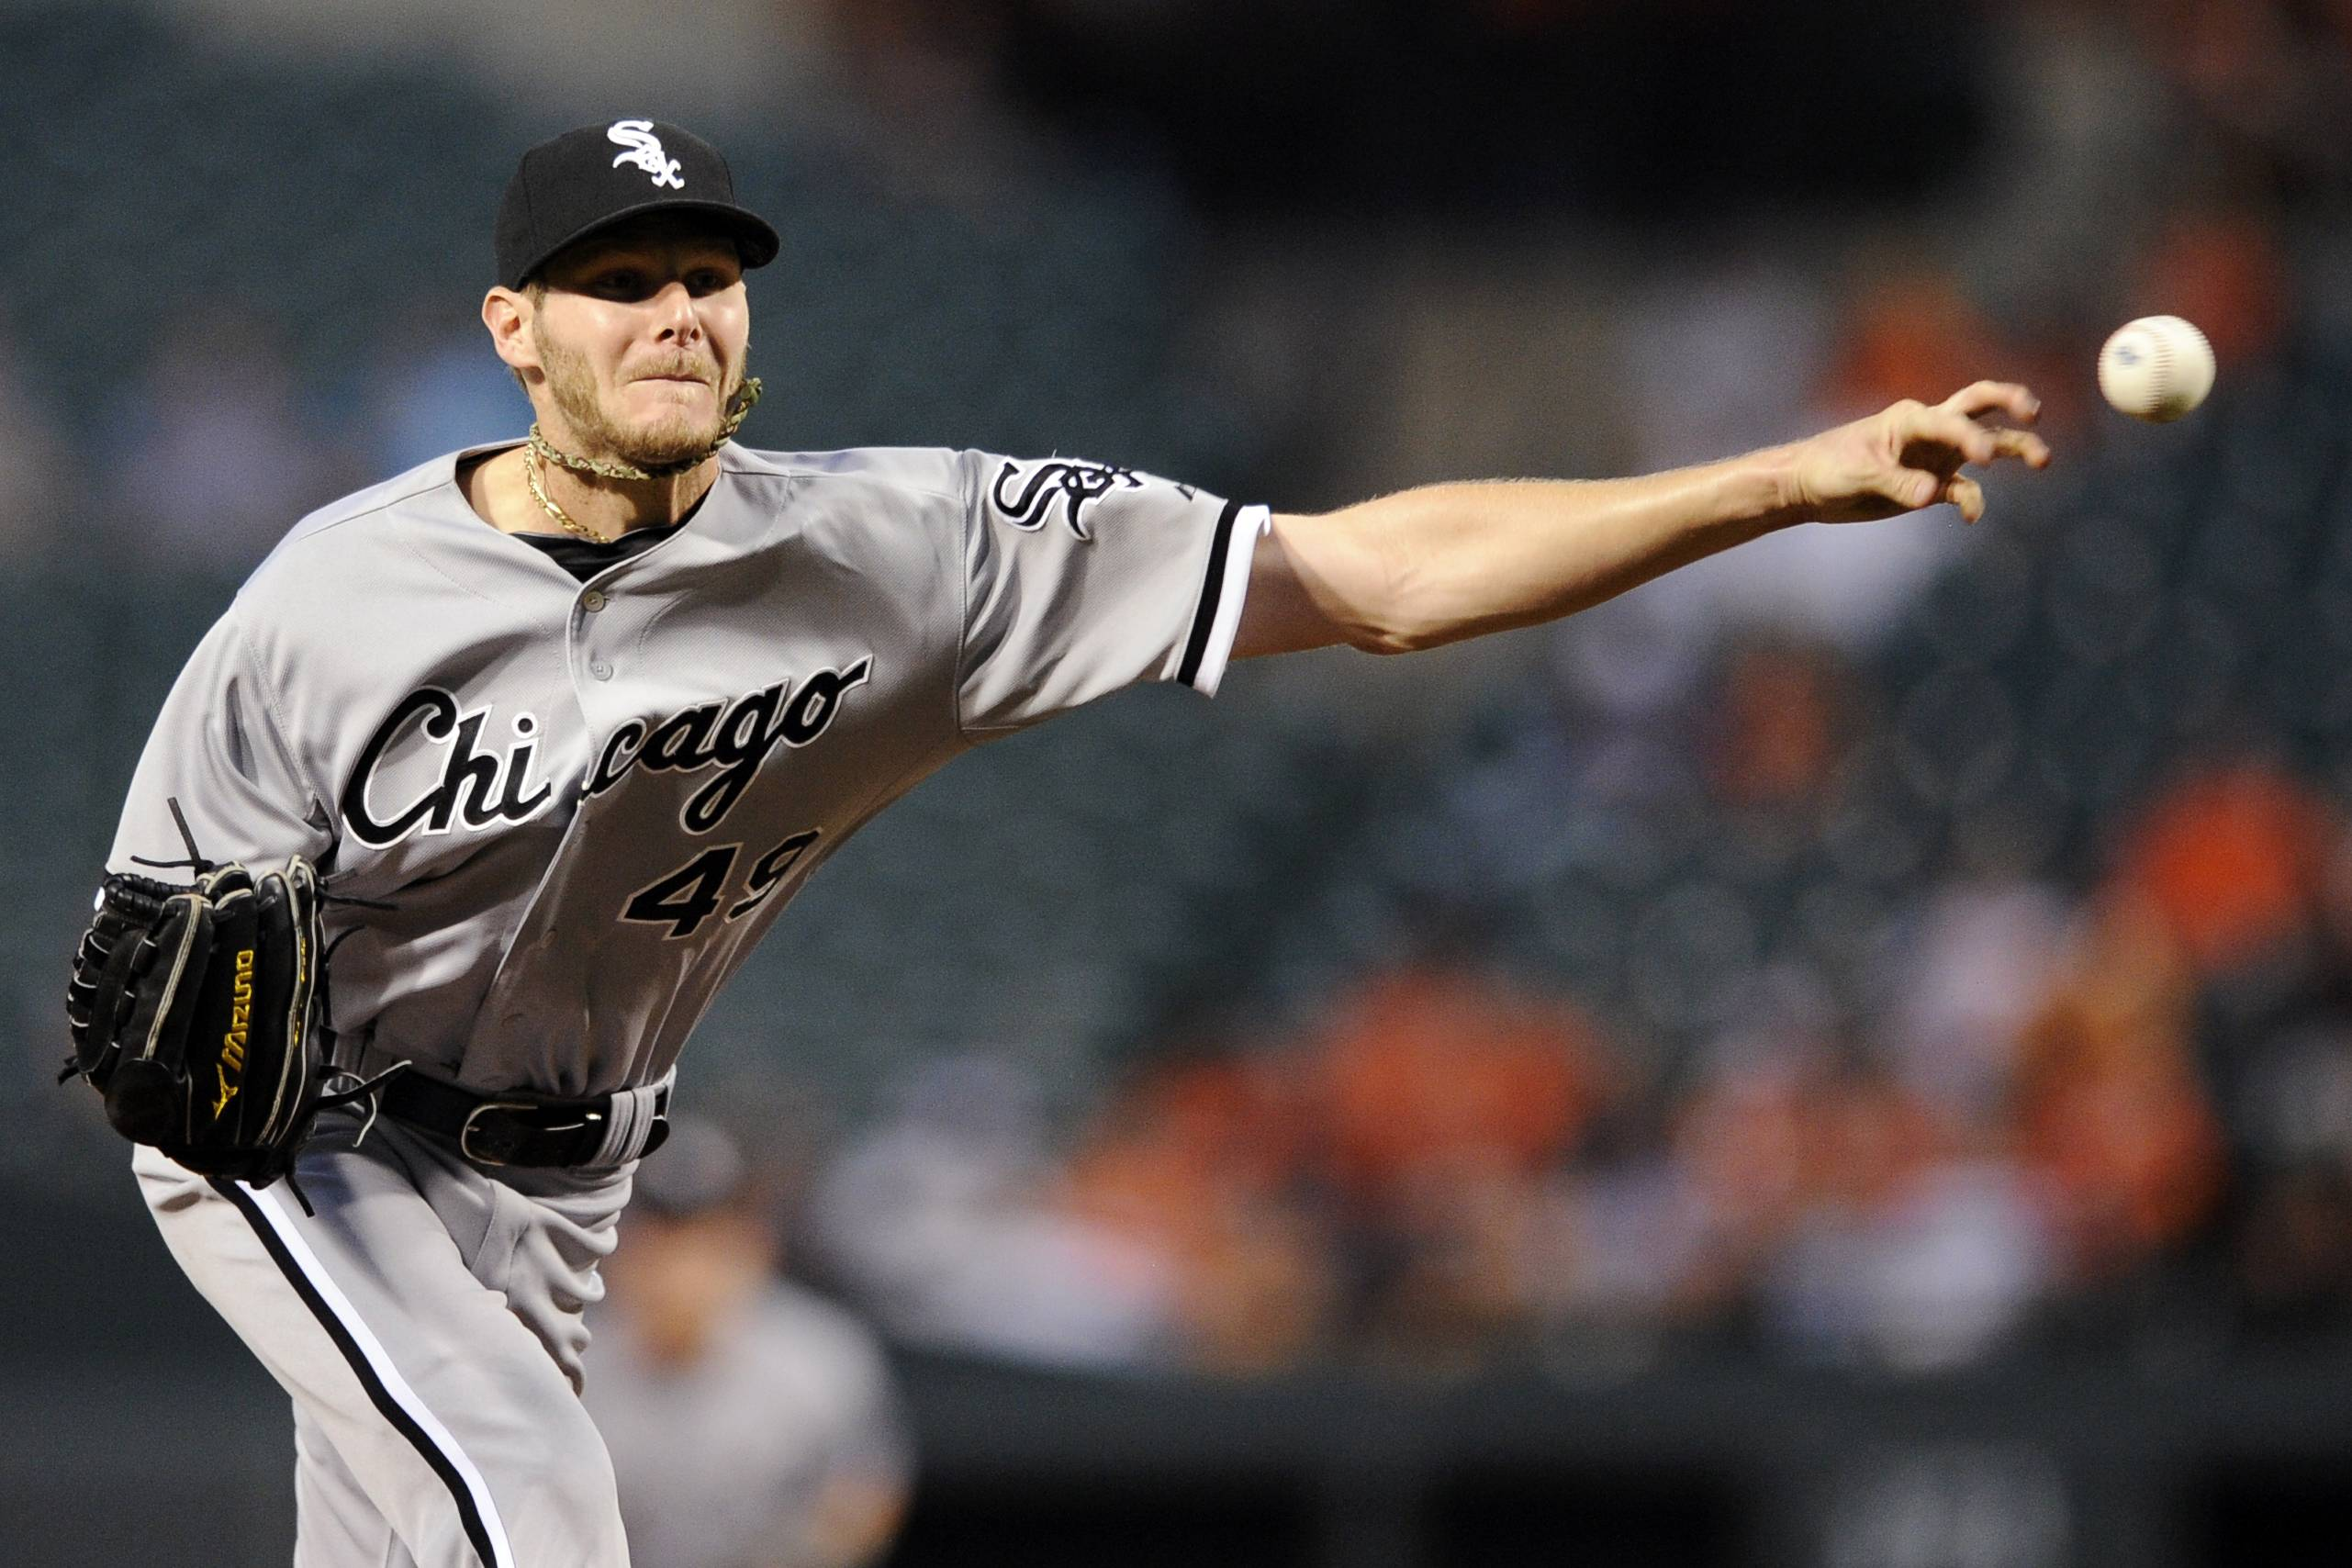 White Sox starting pitcher Chris Sale delivers against the Baltimore Orioles Tiesday during the second inning in Baltimore.